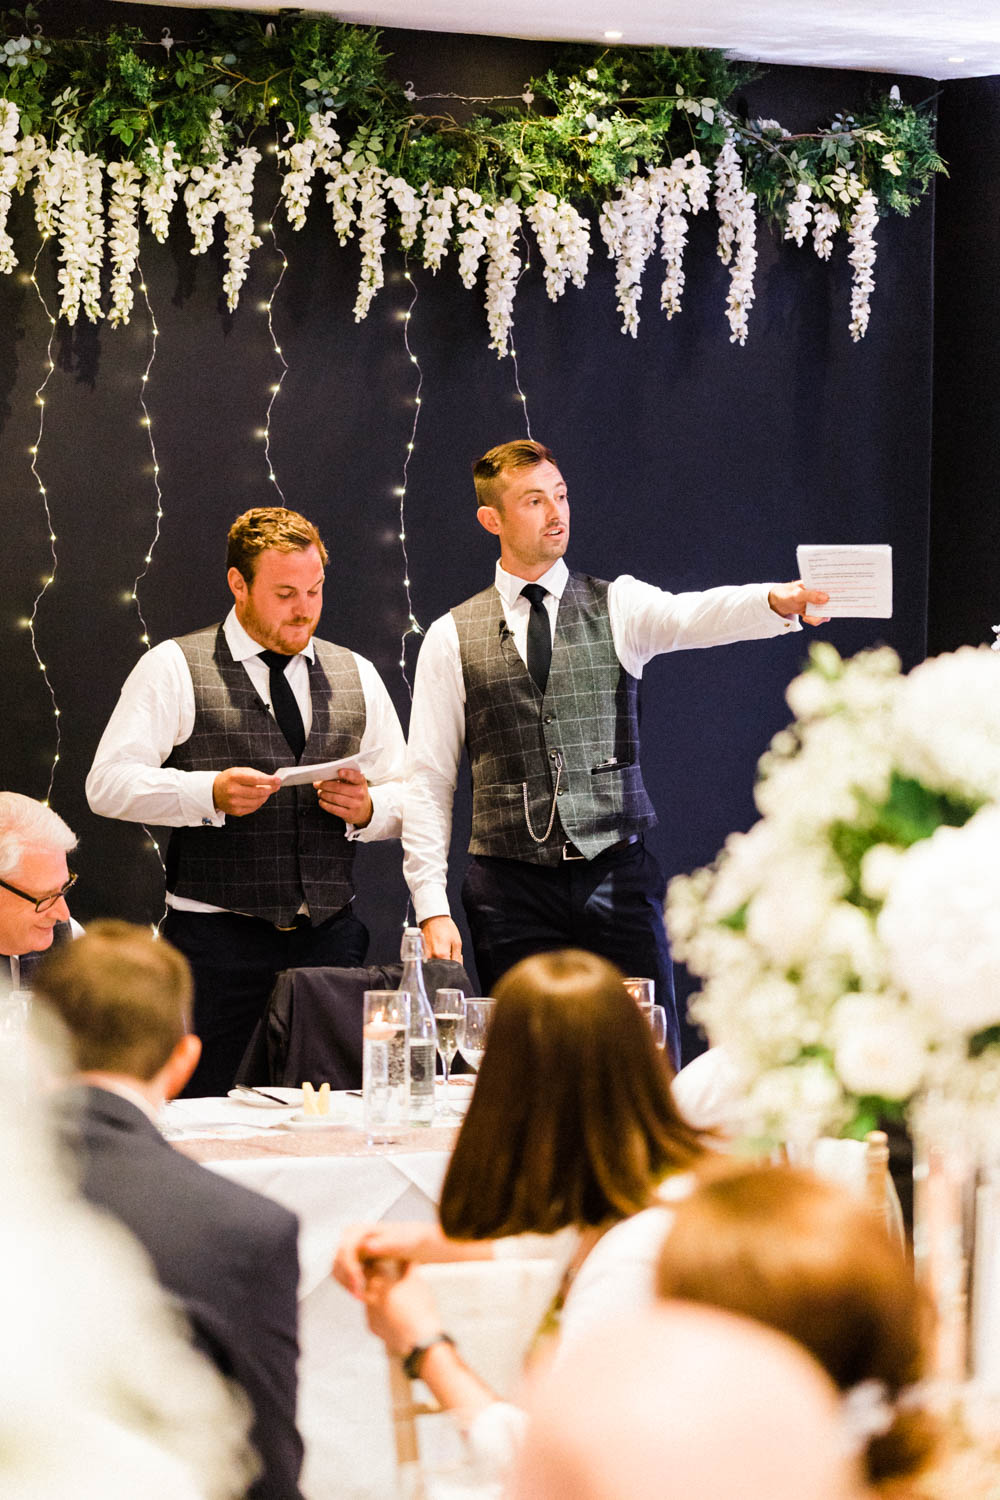 Special-Day-Photography-The-Manor-House-Hotel-Moreton-in-Marsh-Moreton-In-Marsh-Summer-Wedding-The-best-man-makes-a-speech.jpg